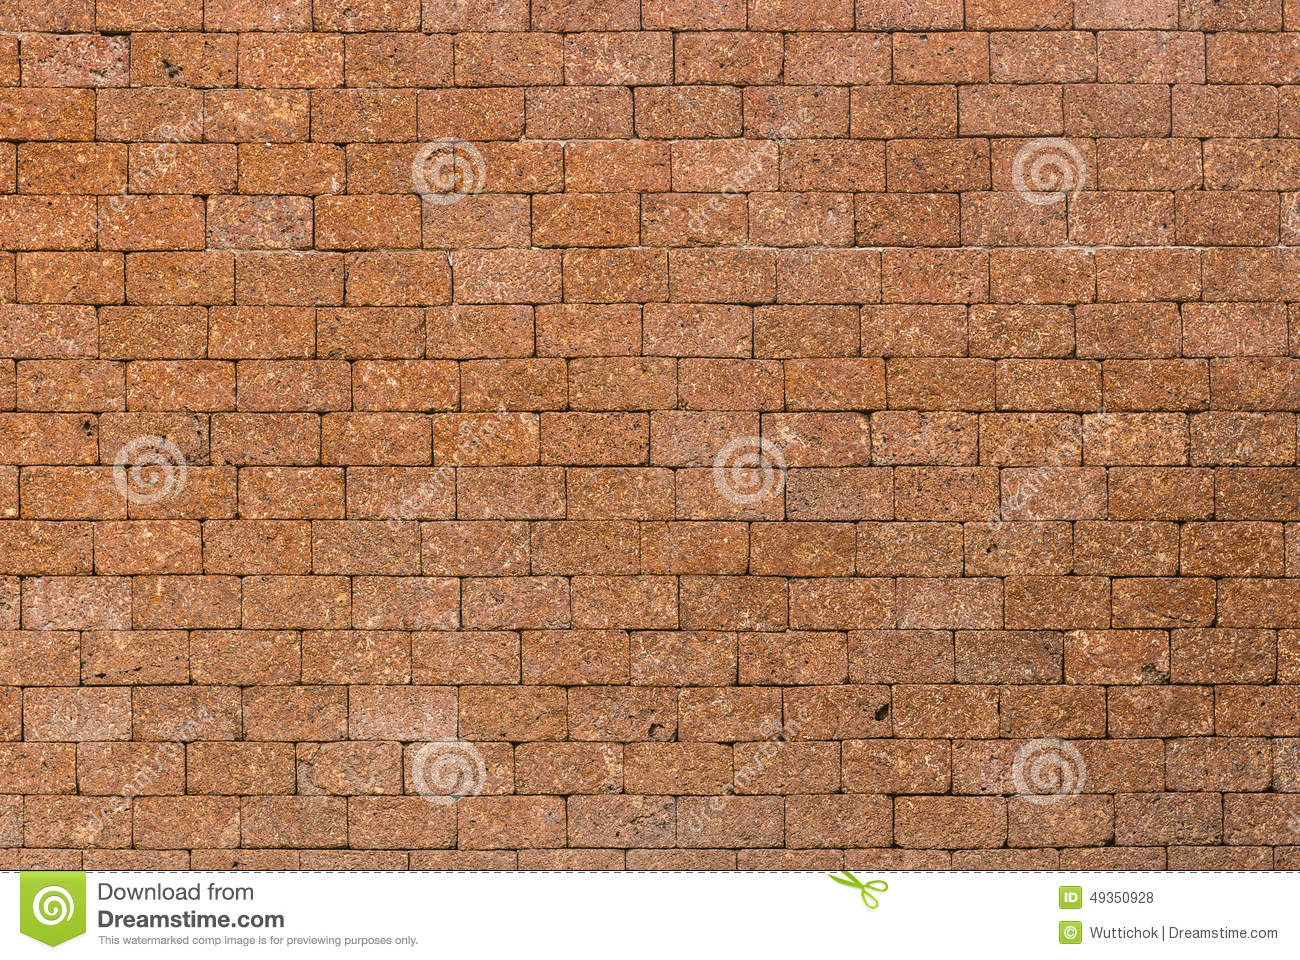 Laterite stone brick wall stock images image 35510874 - Red Color Of Decorative Laterite Stone Wall Surface Stock Photo Image 49350928